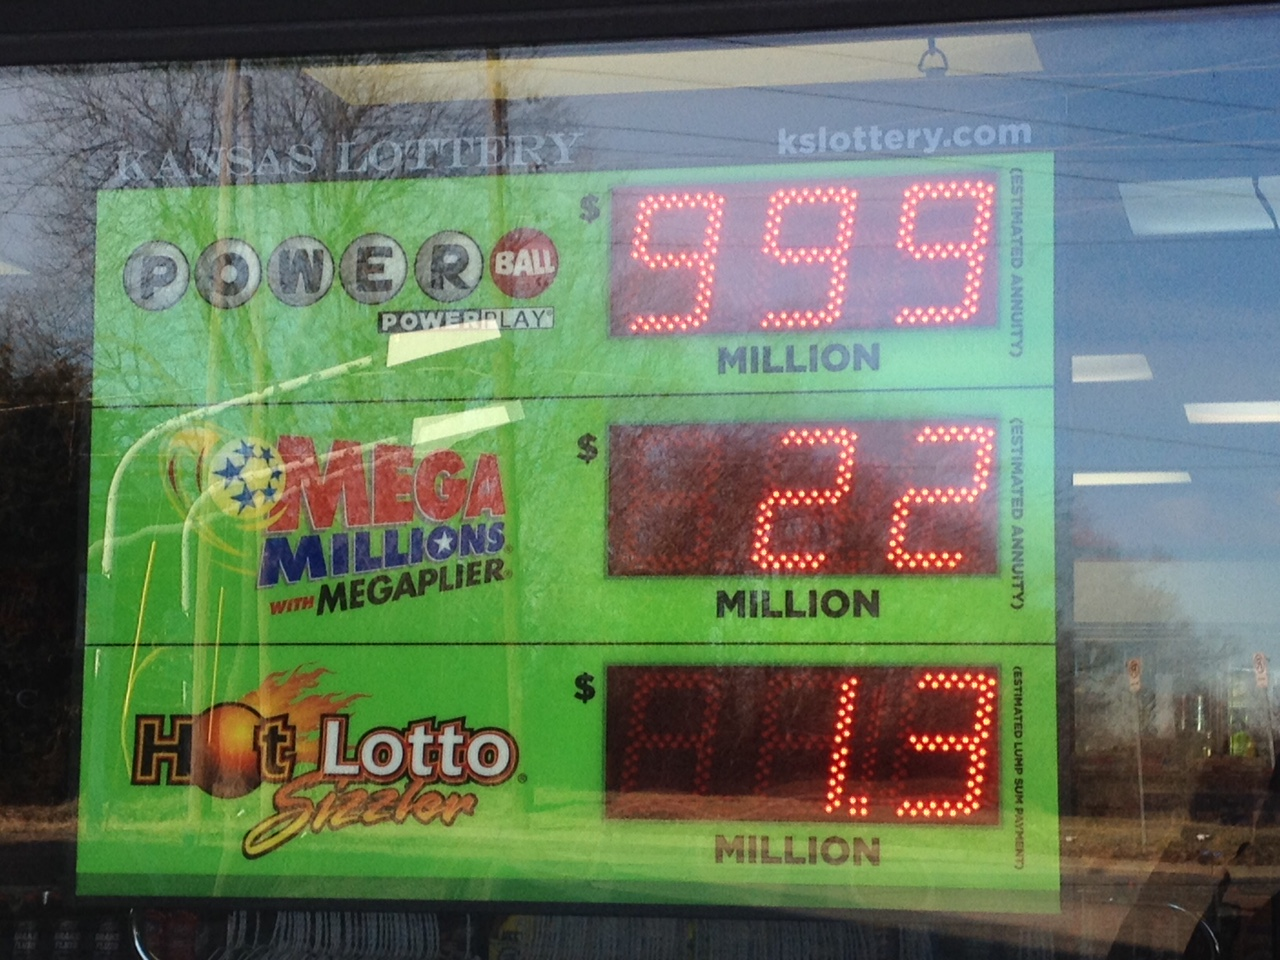 At $1.5 billion, the Powerball jackpot is now so large that it can't be accurately reflected on this lottery retailer's sign, which only goes up to $999 million. (Photo by J. Schafer)